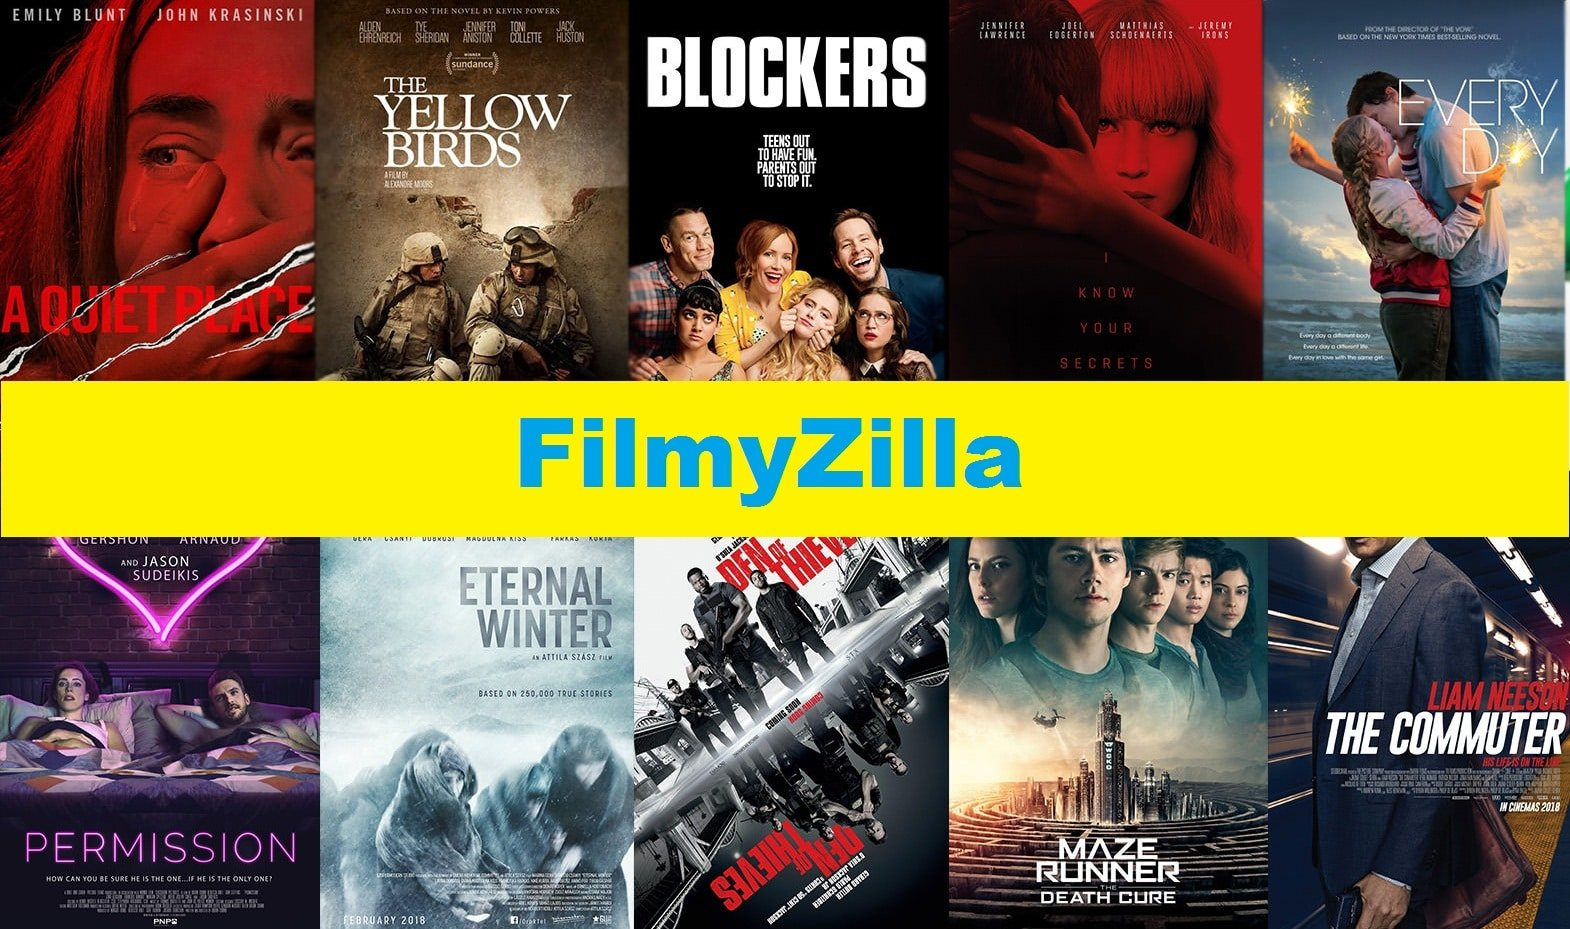 Filmyzilla Download Telegu,Tamil,Malayalam,Hindi Dubbed Movies of 2020